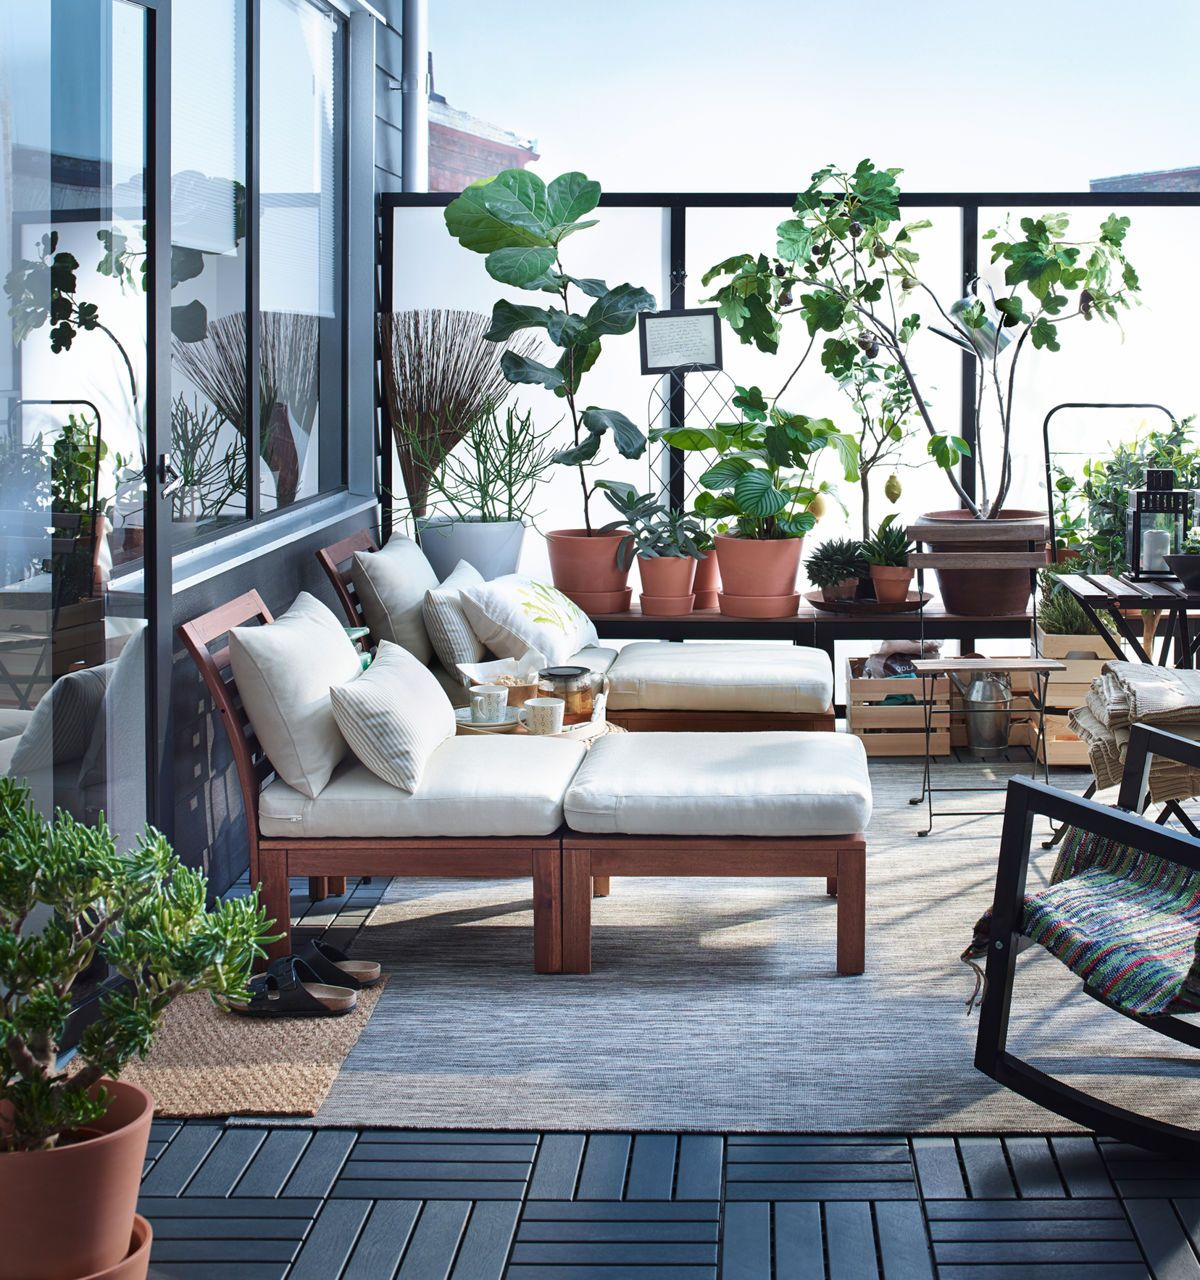 IKEA Katalog 2016 #apartmentbalconygarden